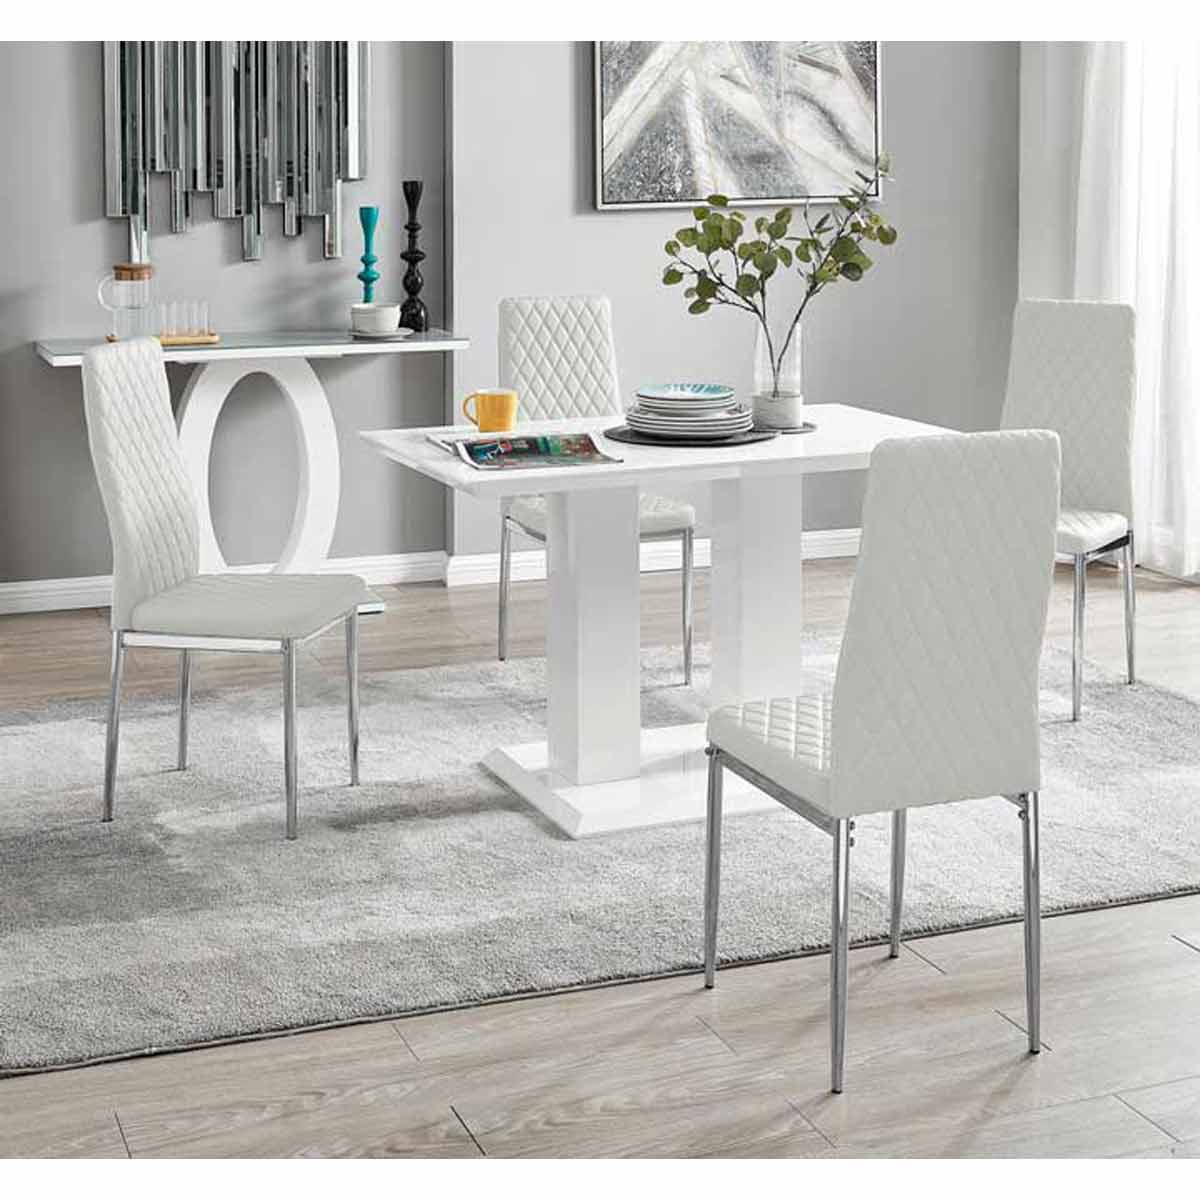 Furniture Box Imperia 4 Modern White High Gloss Dining Table And 4 White Milan Chairs Set